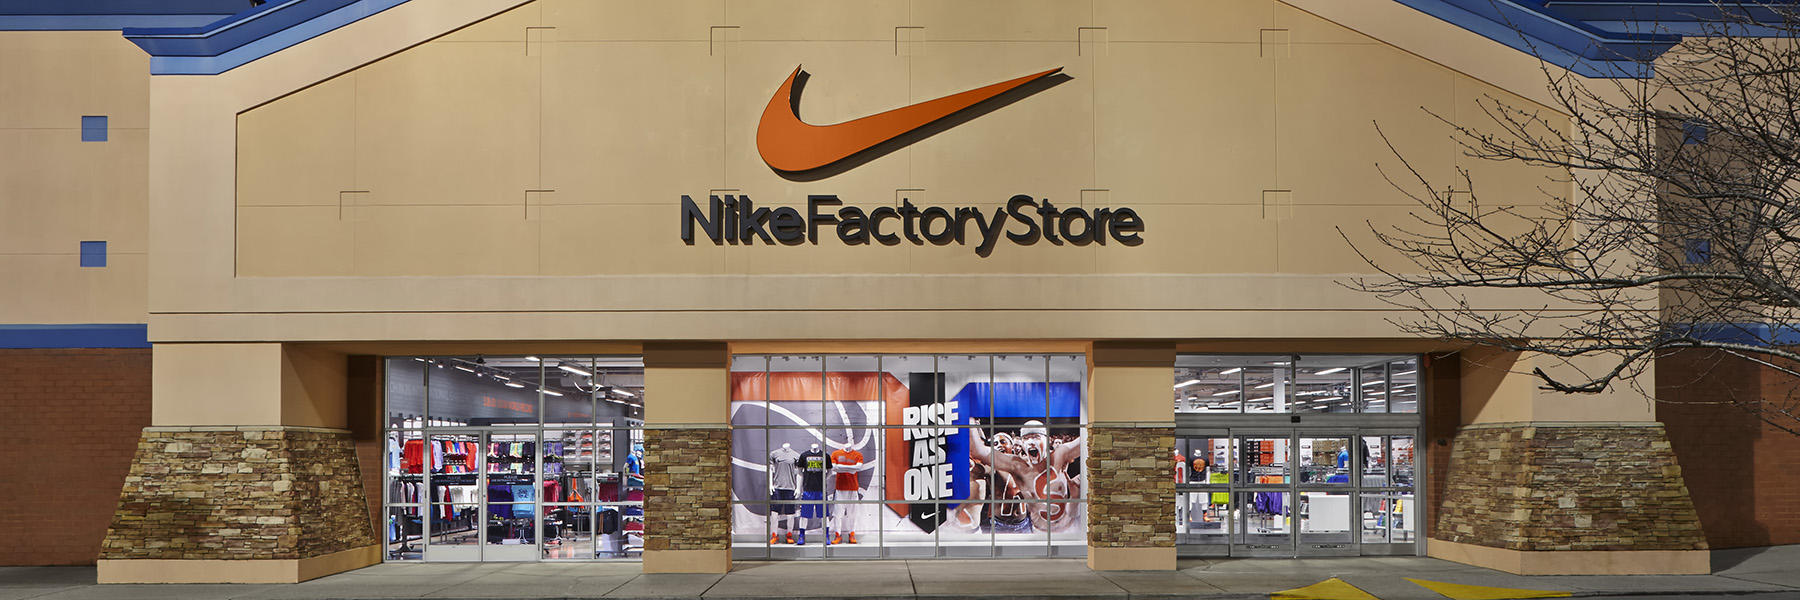 hot sale online 40f1e d0006 Nike Factory Store - Brentwood. Brentwood, TN. Nike.com